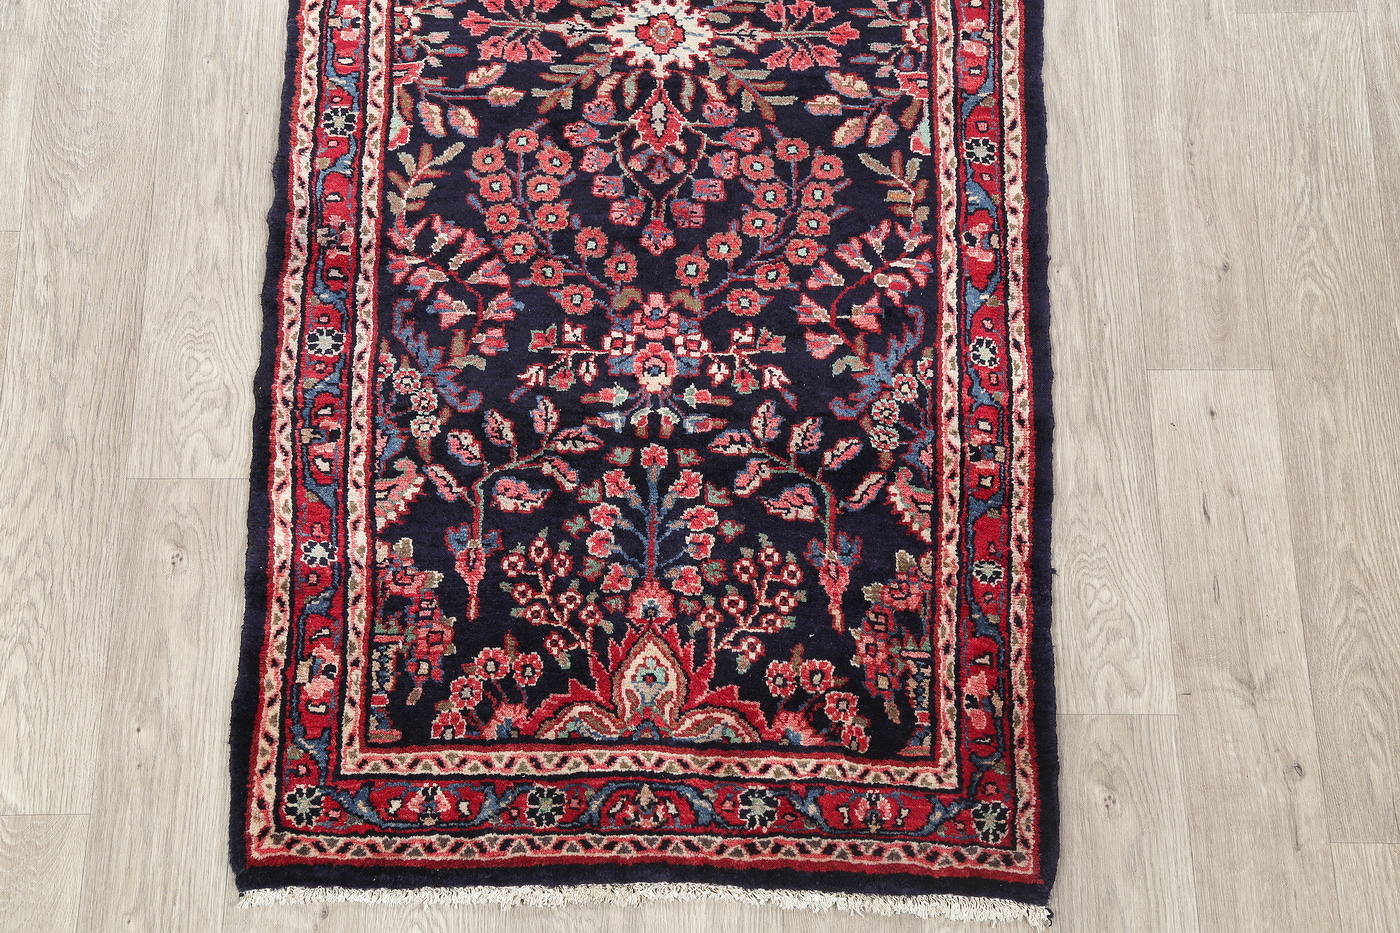 Hand-Knotted Navy Blue Floral Lilian Hamedan Persian Runner Rug Wool 3x7